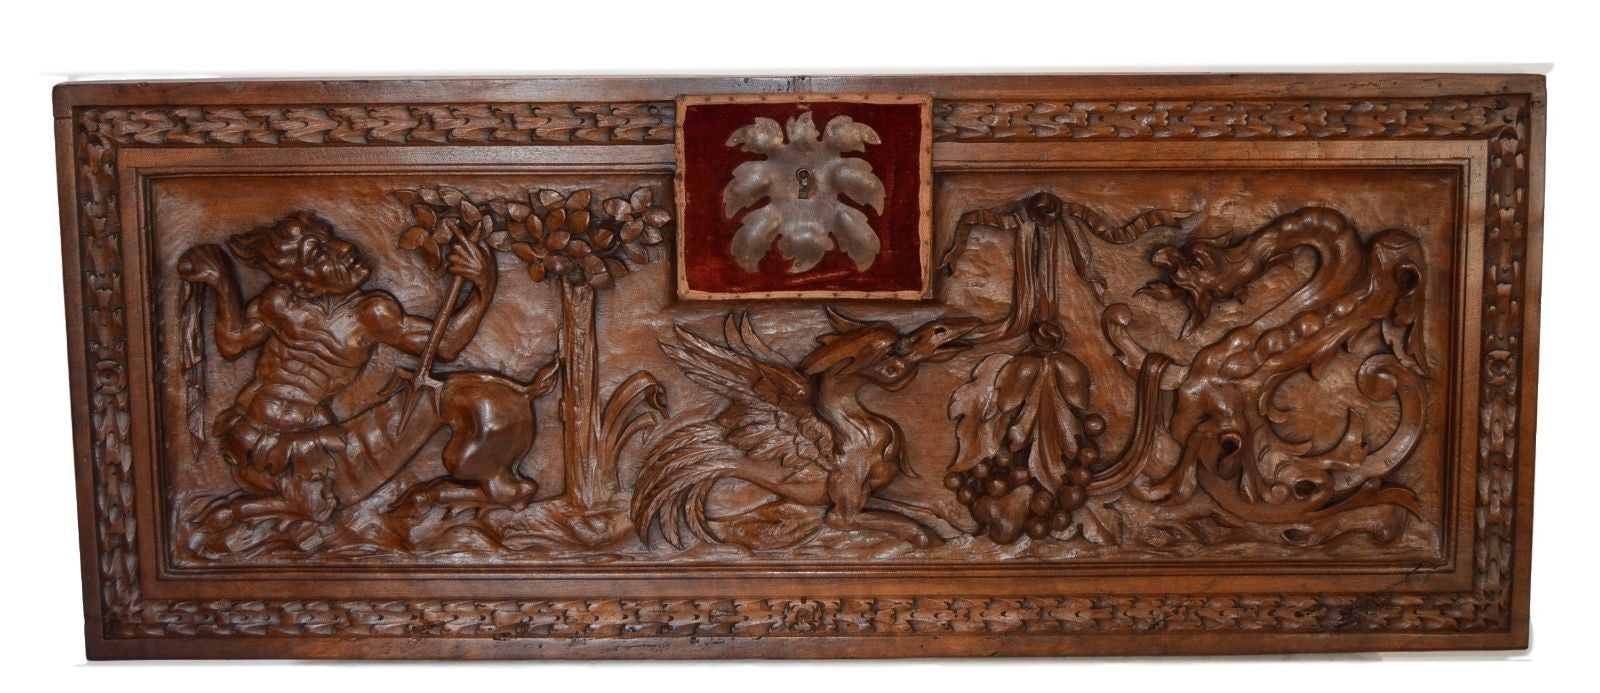 Dragon Panel FREE SHIPPING - Charmantiques